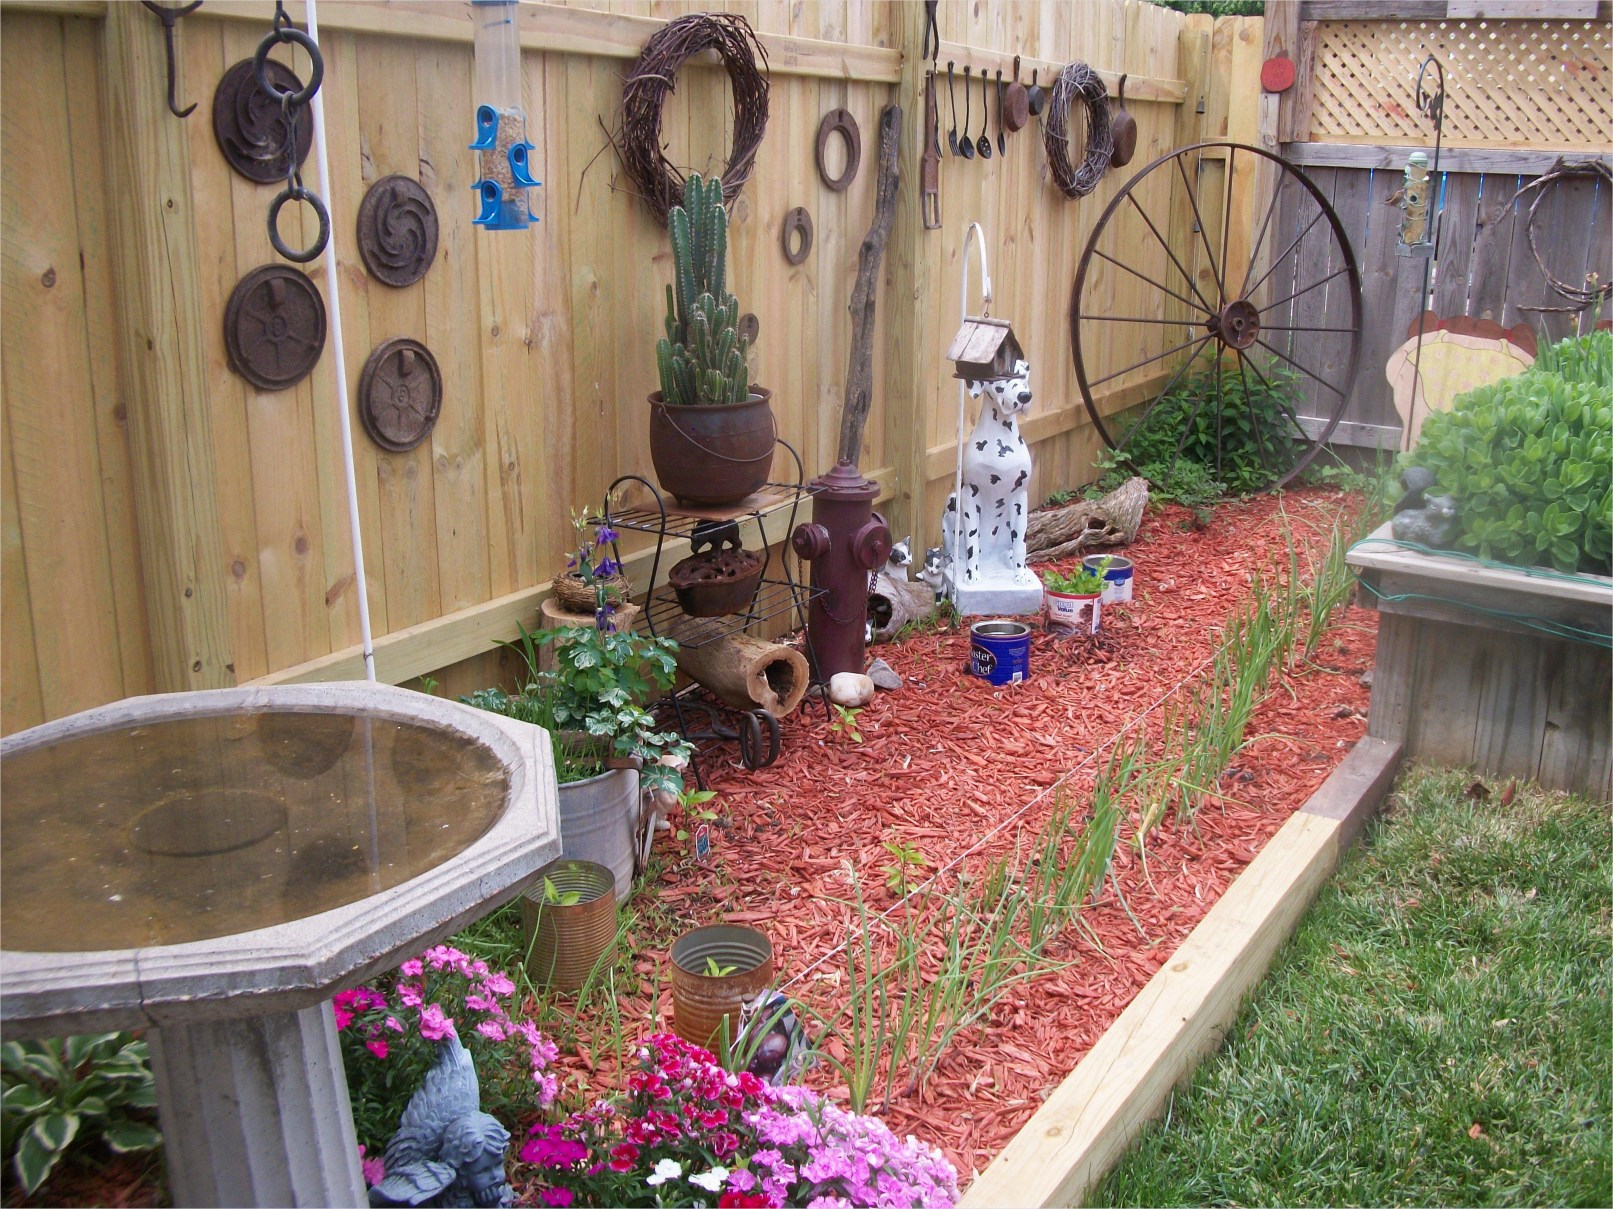 44 Amazing Rustic Garden Ideas 97 My Rustic Garden Cool Home Garden Ideas 9